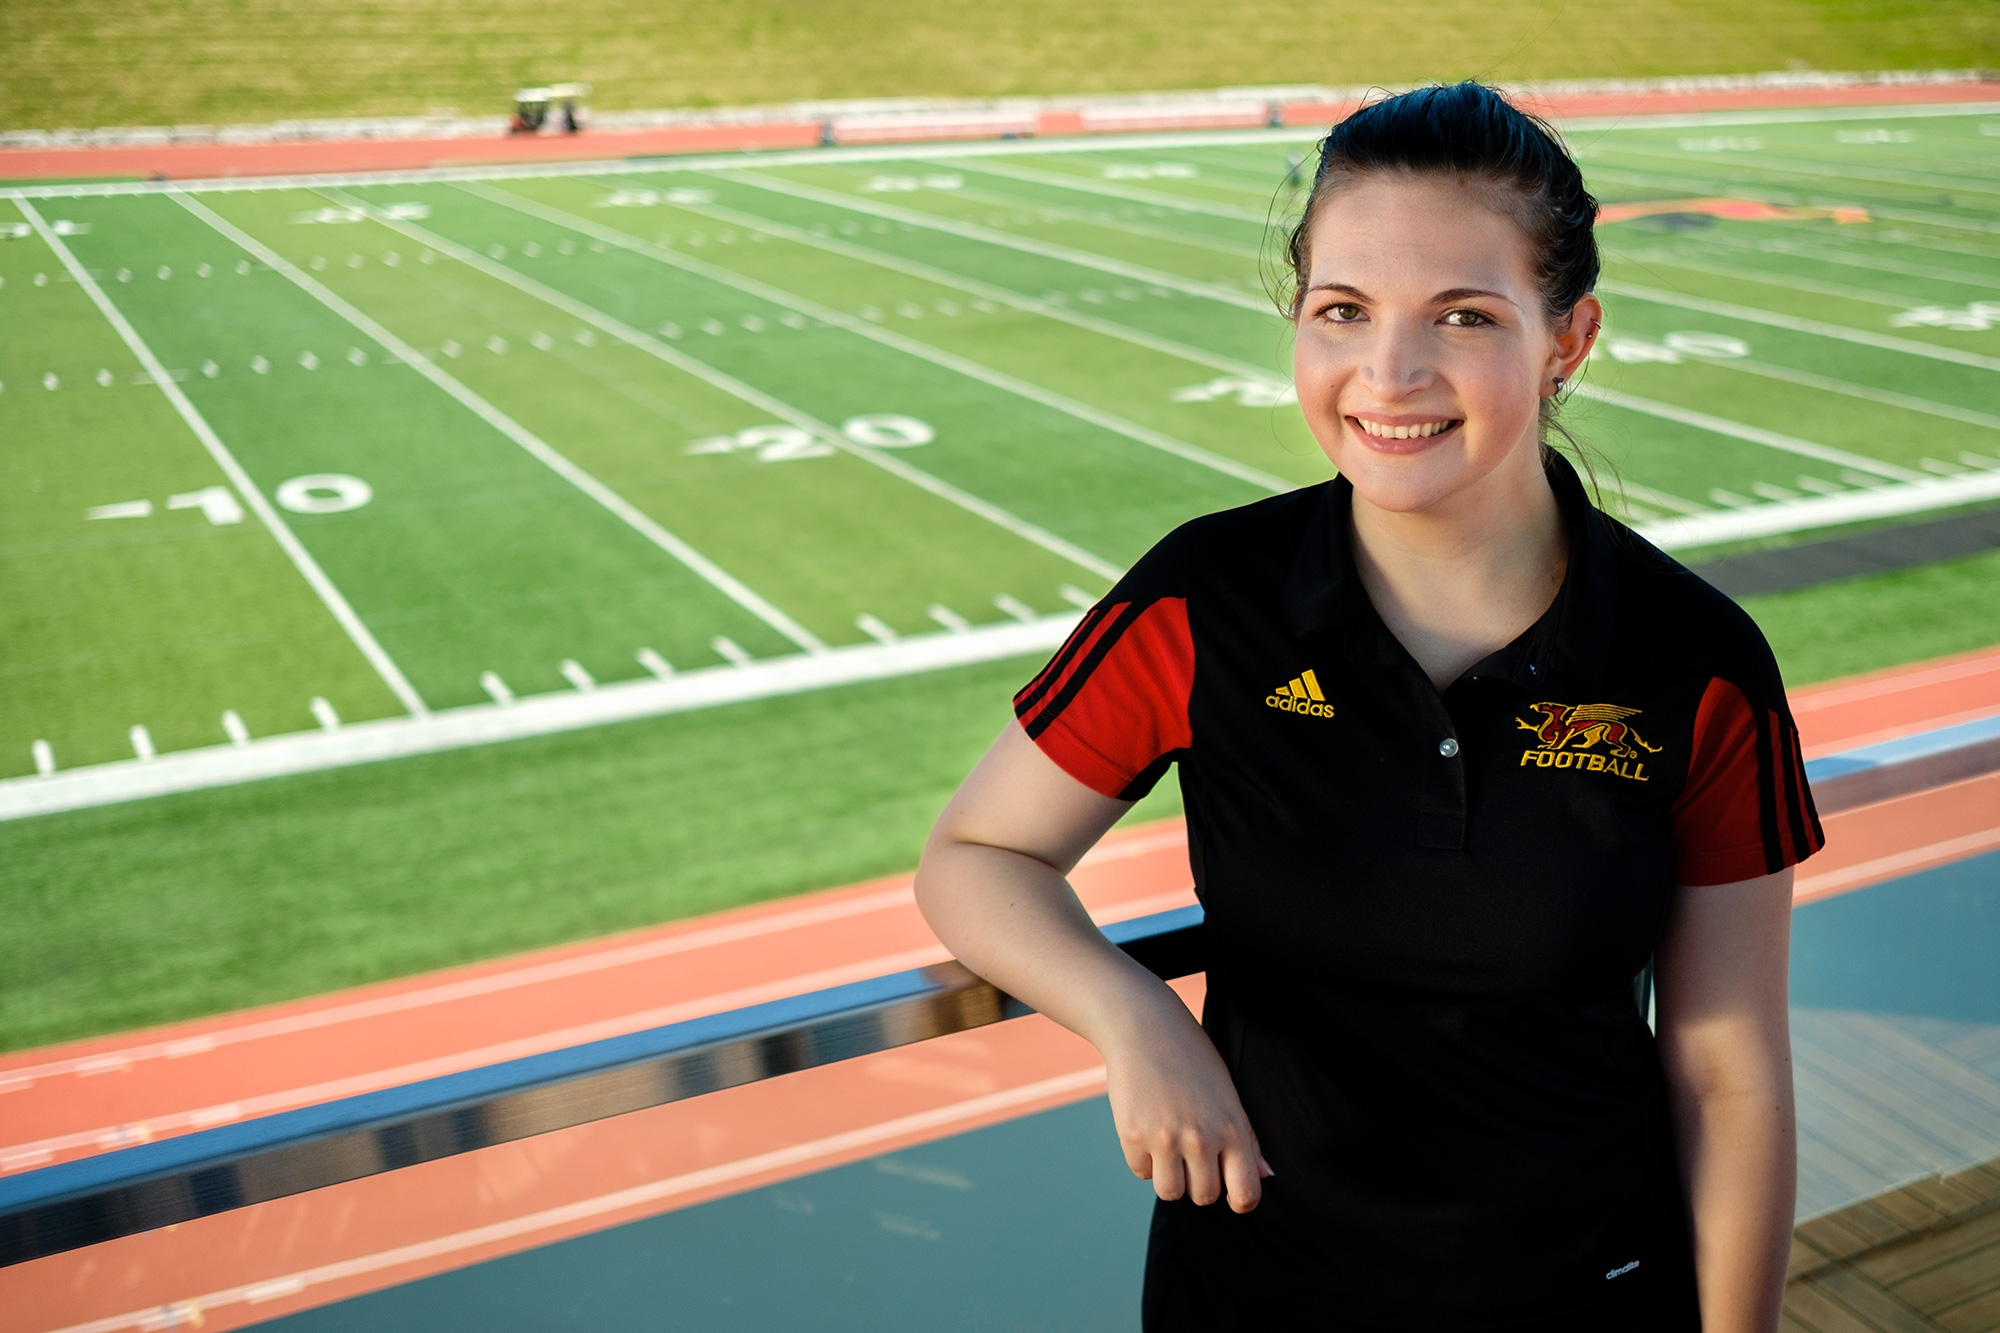 On-Campus Employment - Student working at the University of Guelph in Athletics